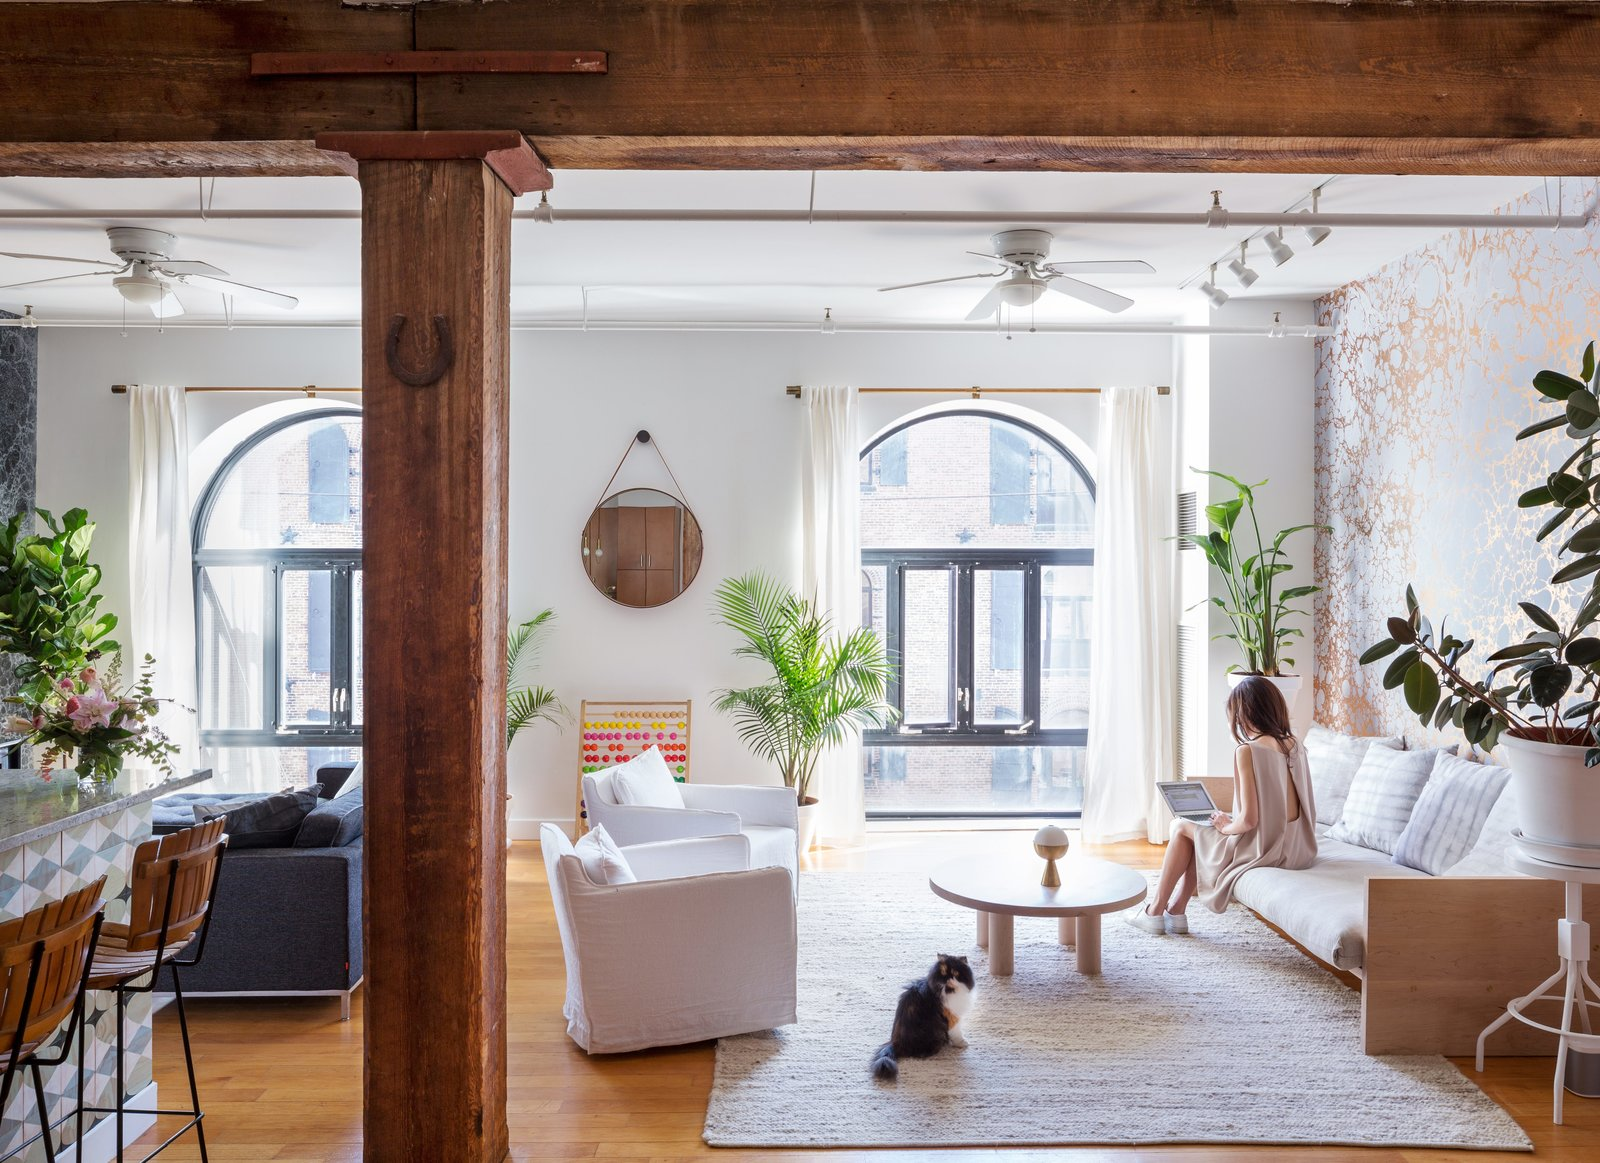 Exposed structural beams are a historic nod to the loft's previous life as a 19th-century warehouse and shipping dock. For the Copes, inspiration for creative projects never draws far from home; they named Calico after their cat, Irie. Tagged: Living Room, Sofa, Chair, Stools, Ceiling Lighting, Track Lighting, Coffee Tables, Light Hardwood Floor, and Rug Floor.  Photo 18 of 21 in 21 Cats Living in the Modern World from Marble Madness